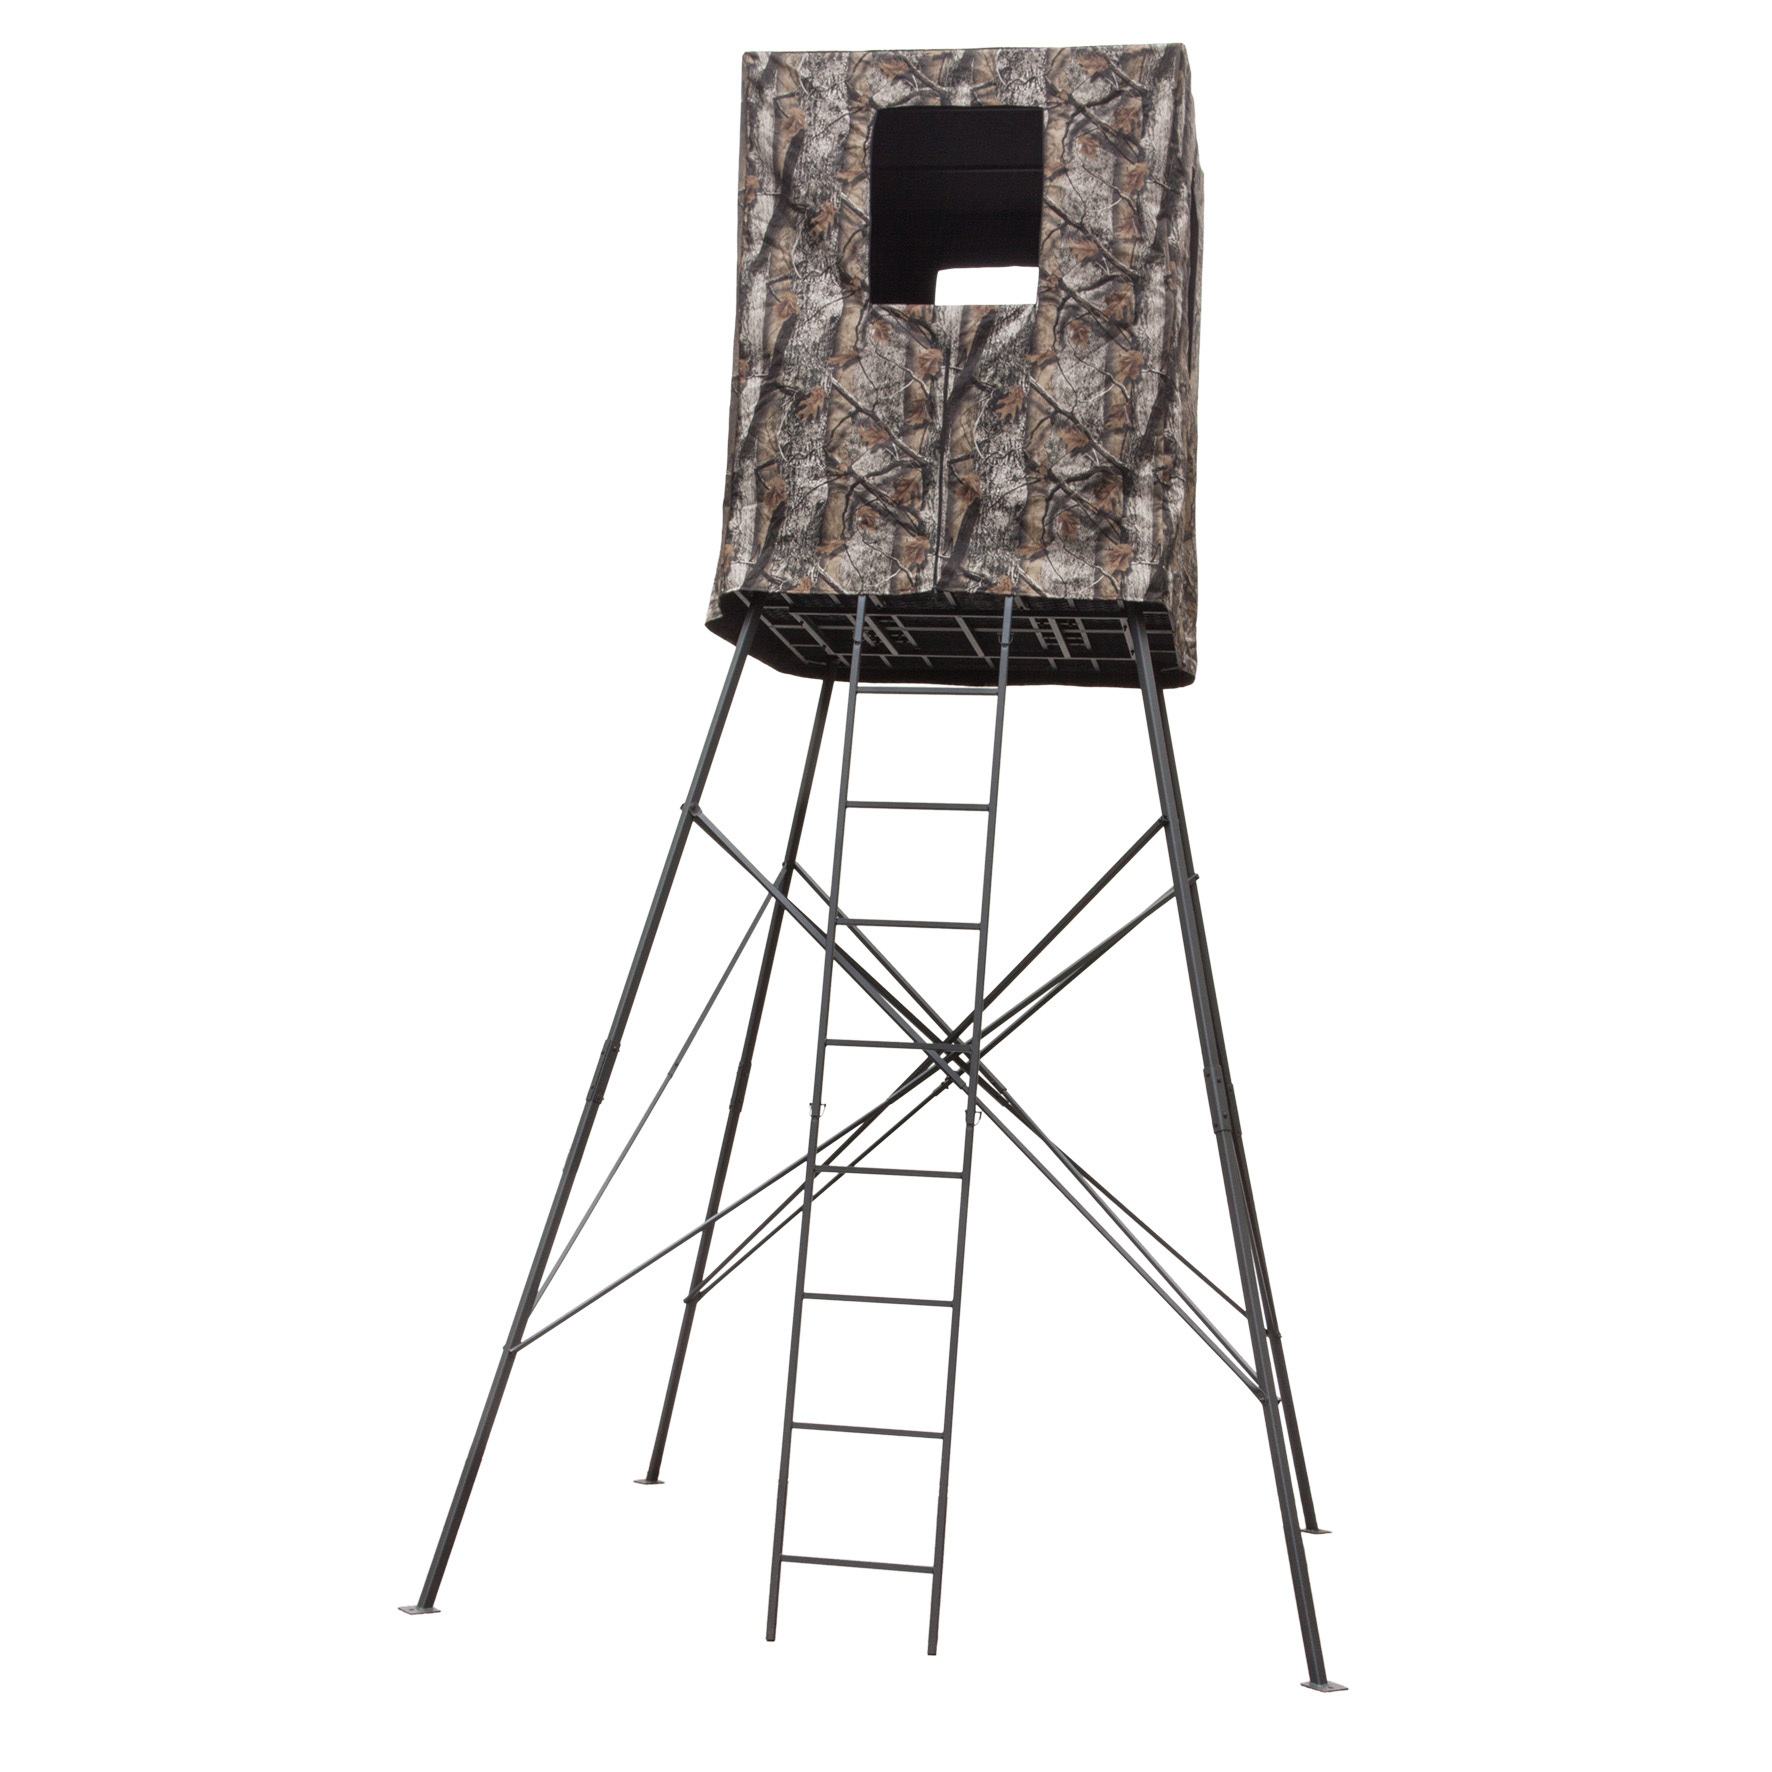 Big Dog 14 Guard Tower 2 Person Quad Pod Deer Stand With